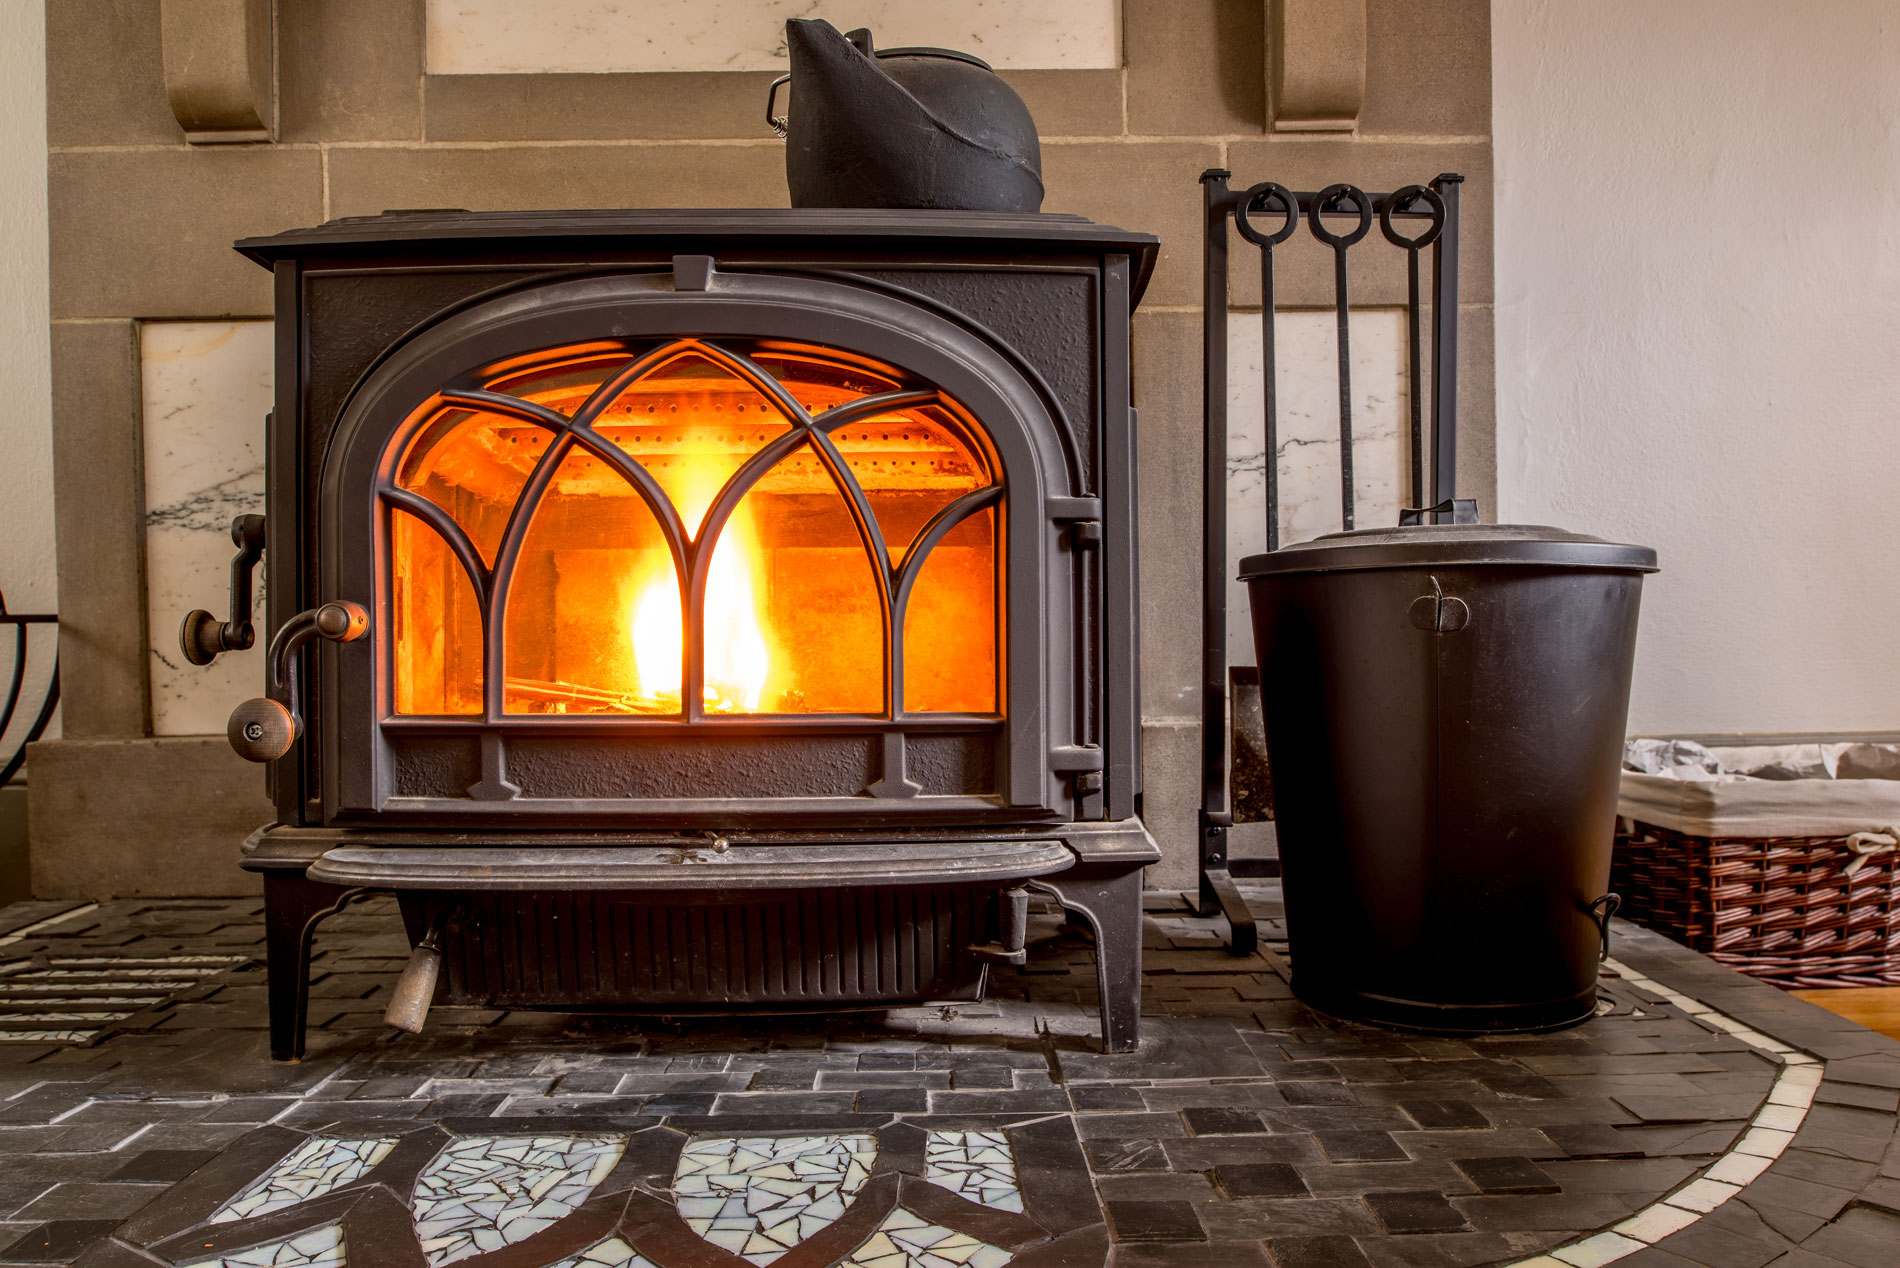 wood-pellet-stove-burning